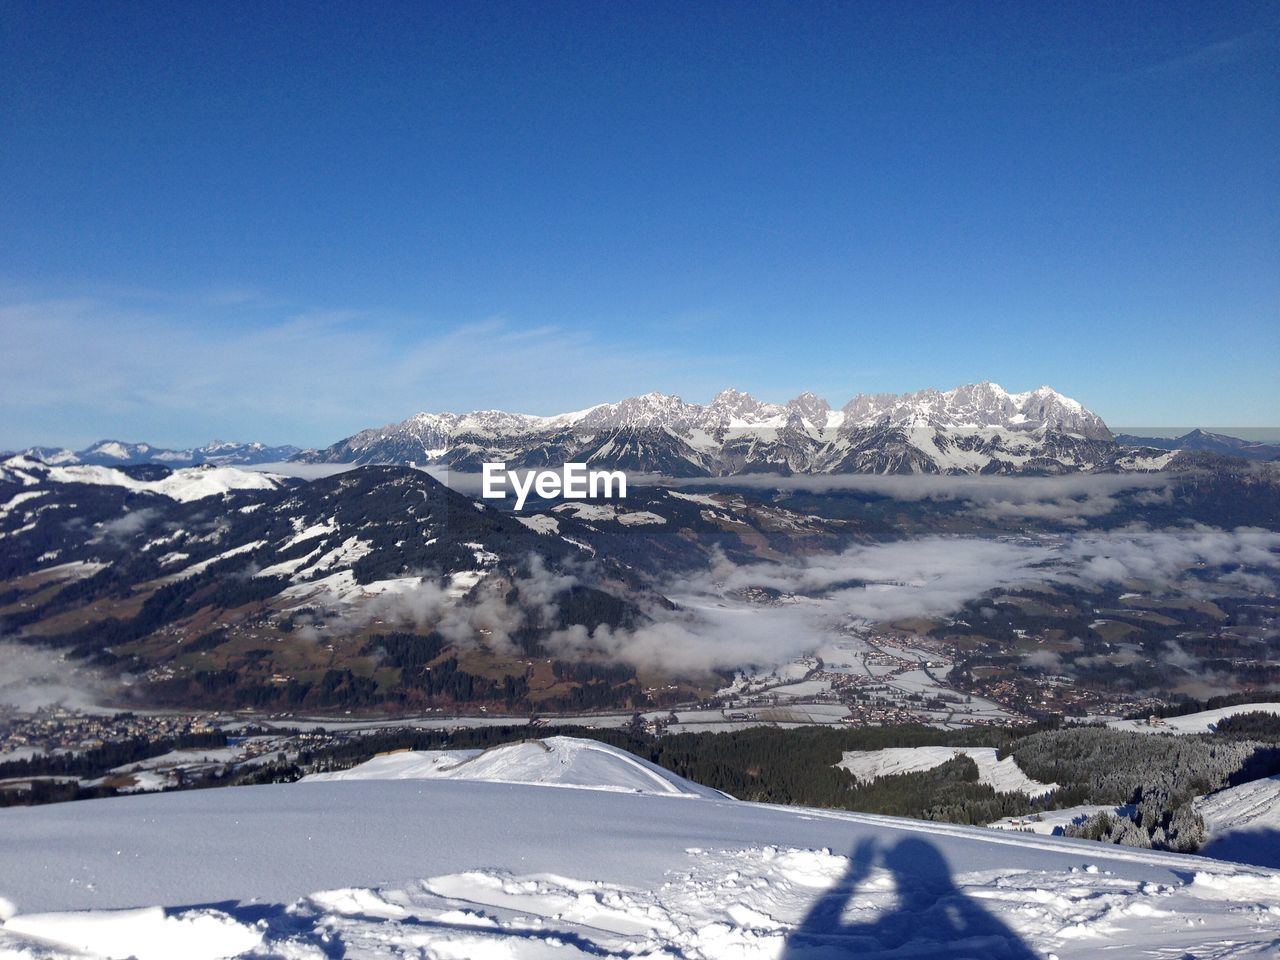 snow, cold temperature, winter, mountain, scenics - nature, sky, beauty in nature, snowcapped mountain, environment, tranquil scene, mountain range, landscape, blue, tranquility, nature, white color, non-urban scene, day, covering, no people, outdoors, mountain peak